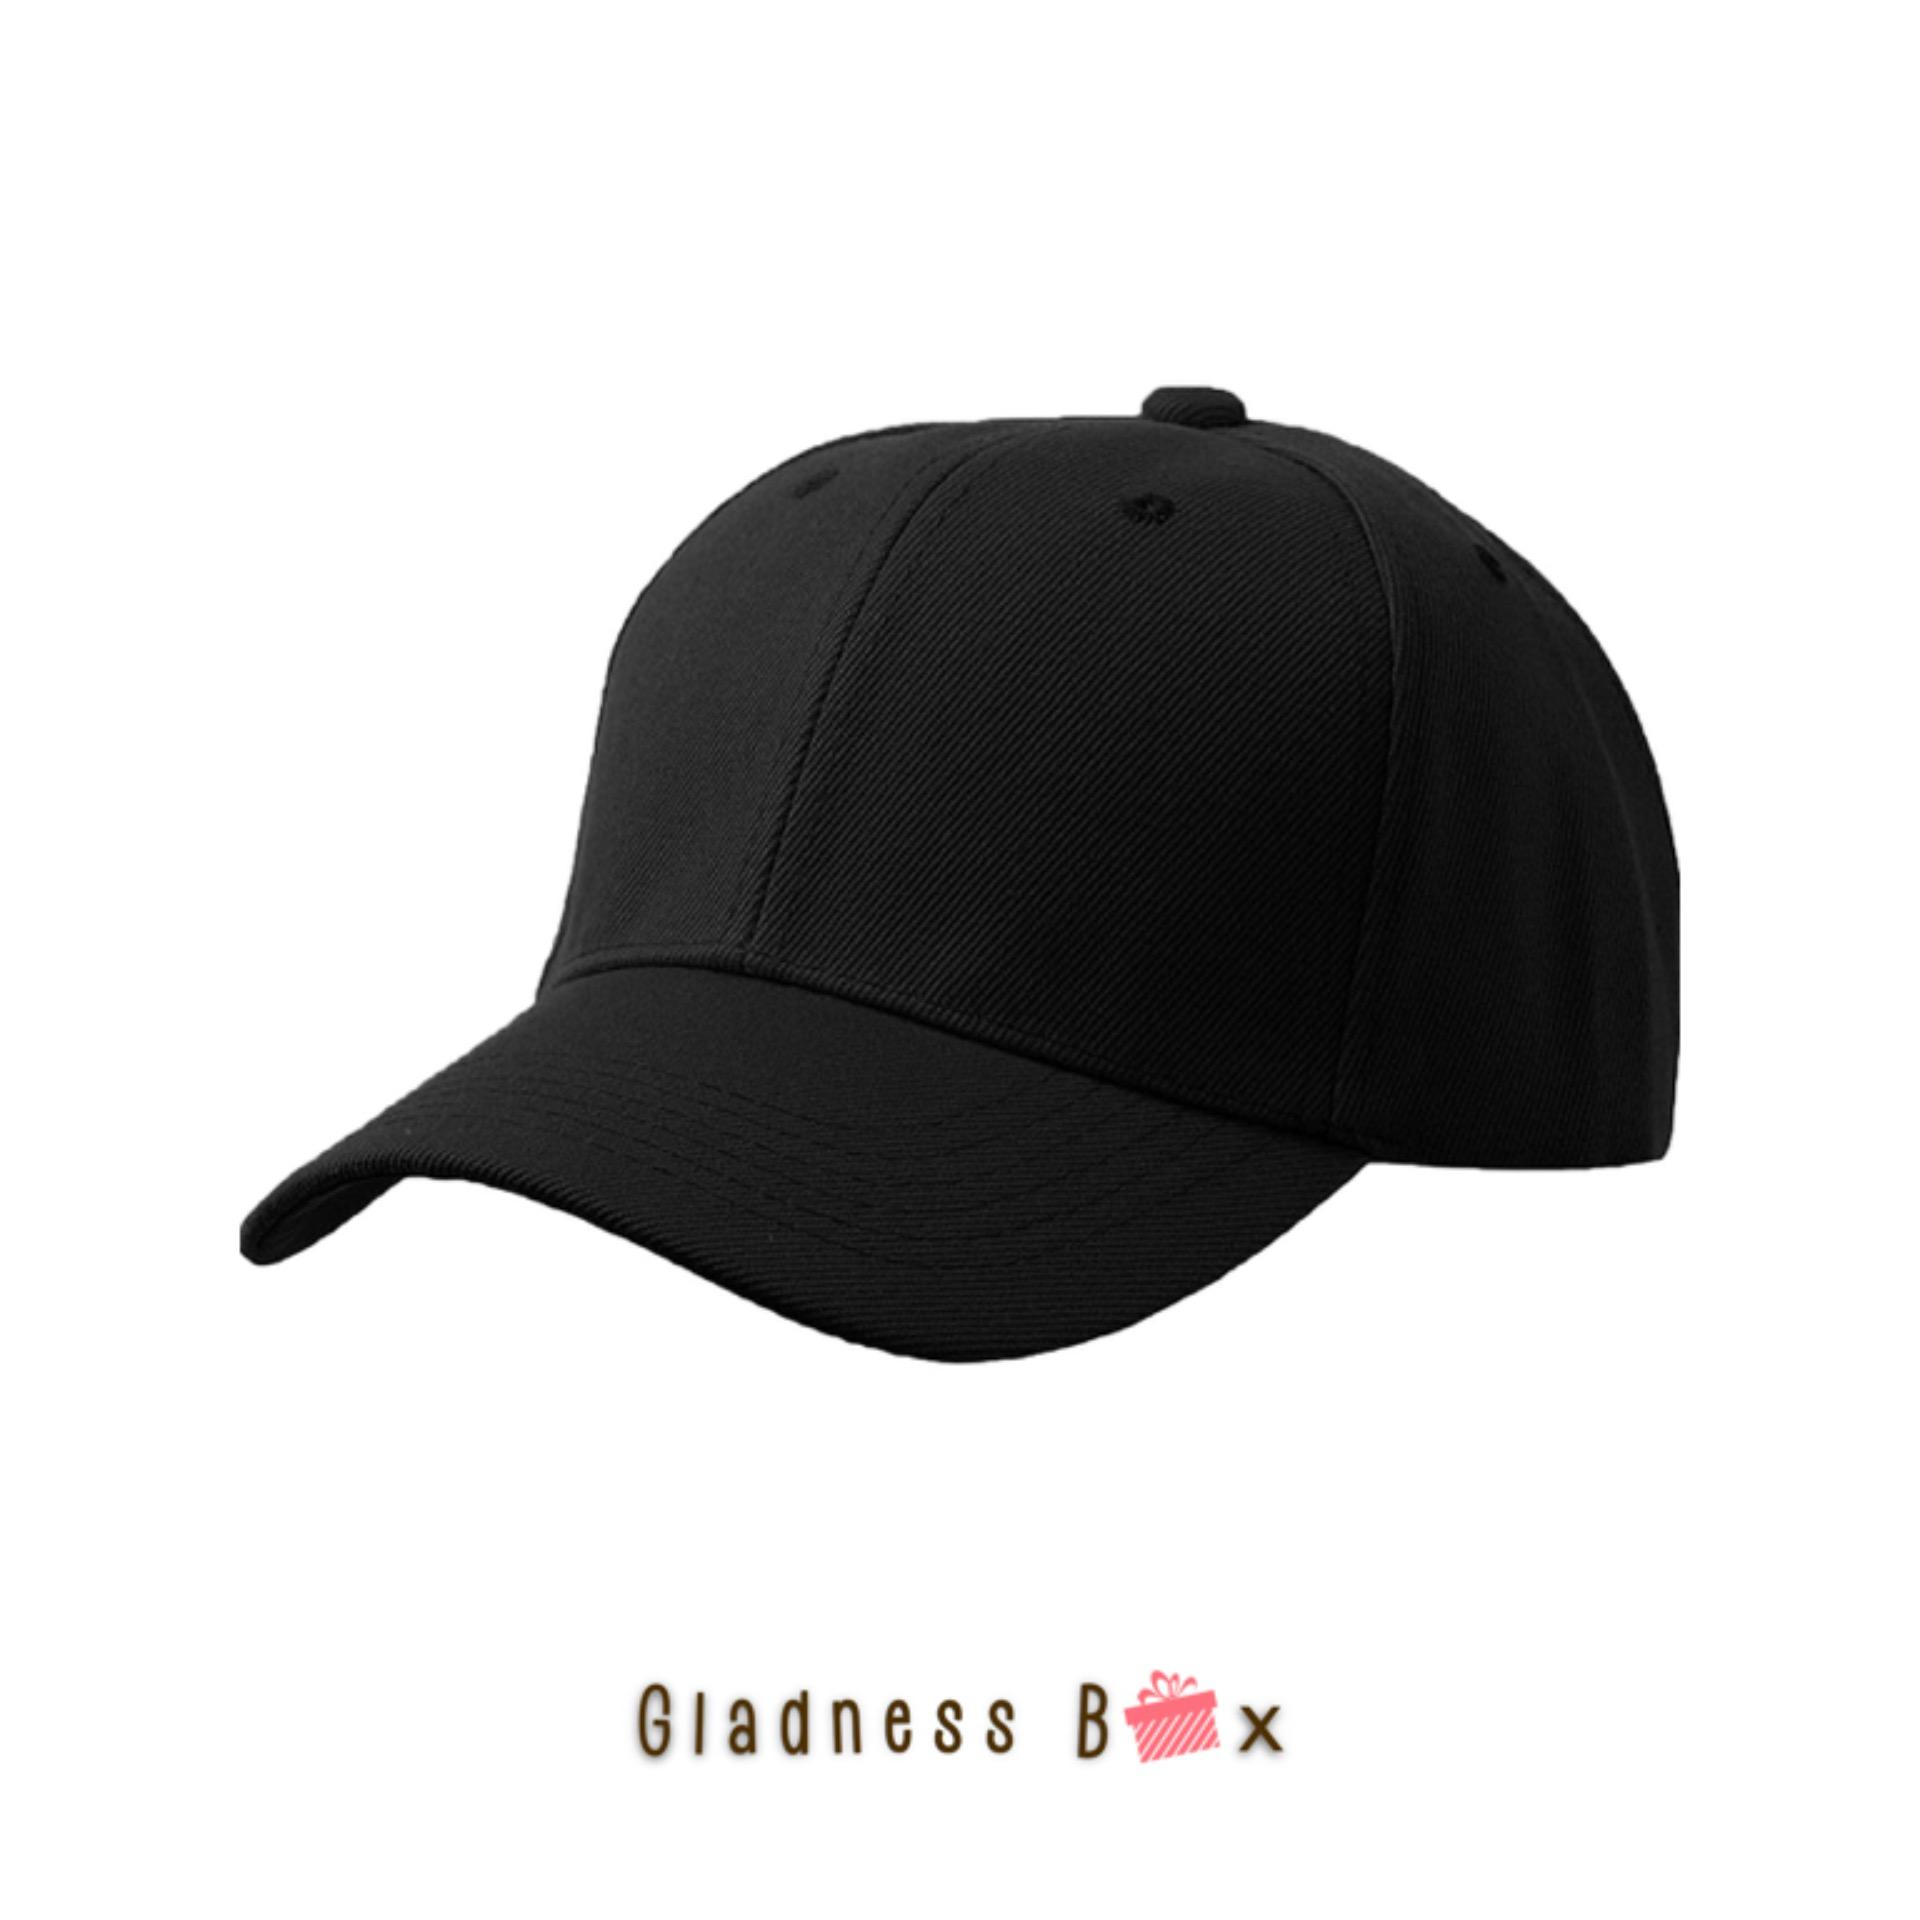 2b8a848ff6d Gladness Box High Quality Plain Baseball Cap for Men Women Unisex